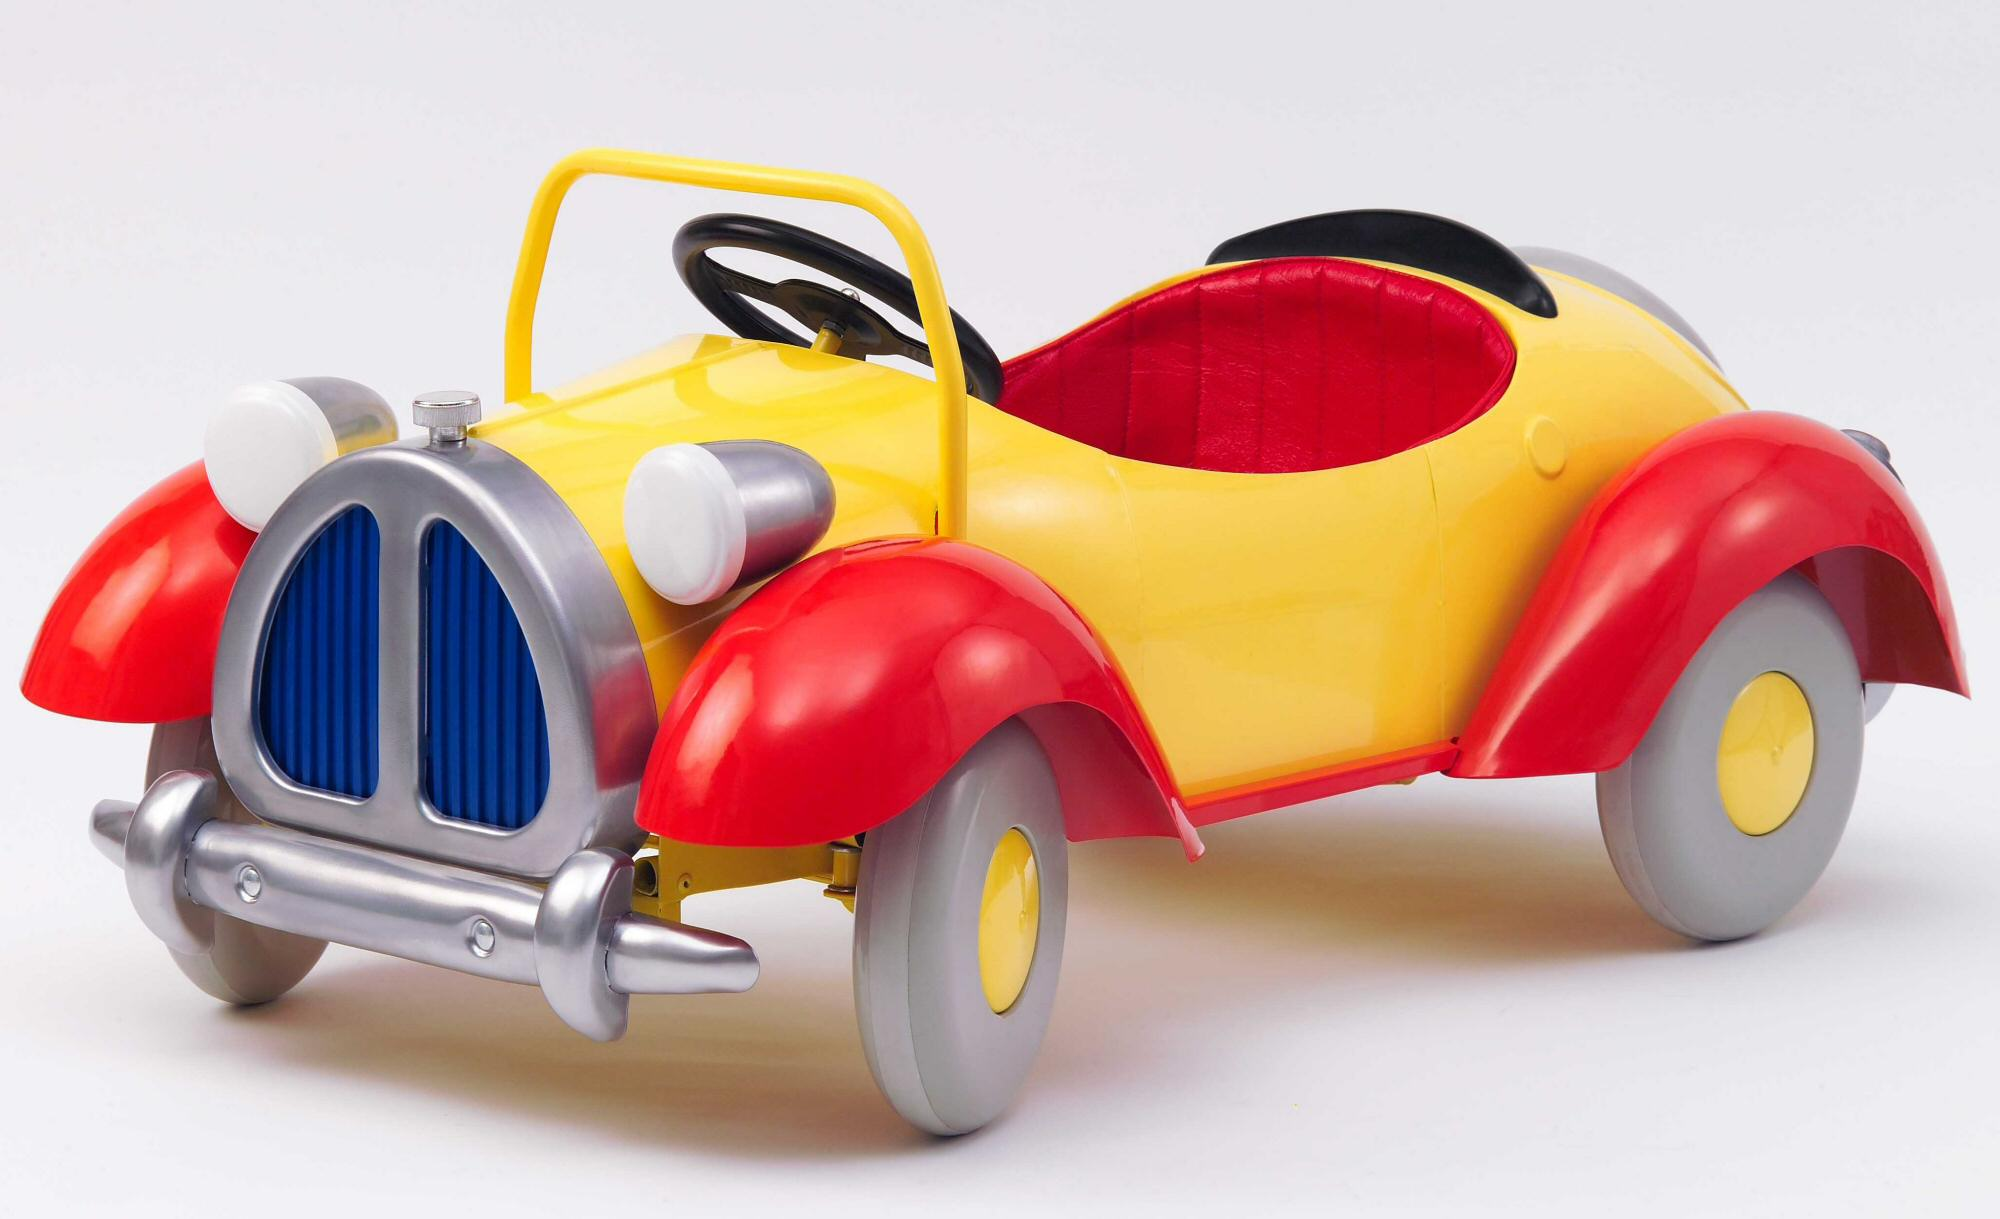 noddy pedal car. Black Bedroom Furniture Sets. Home Design Ideas